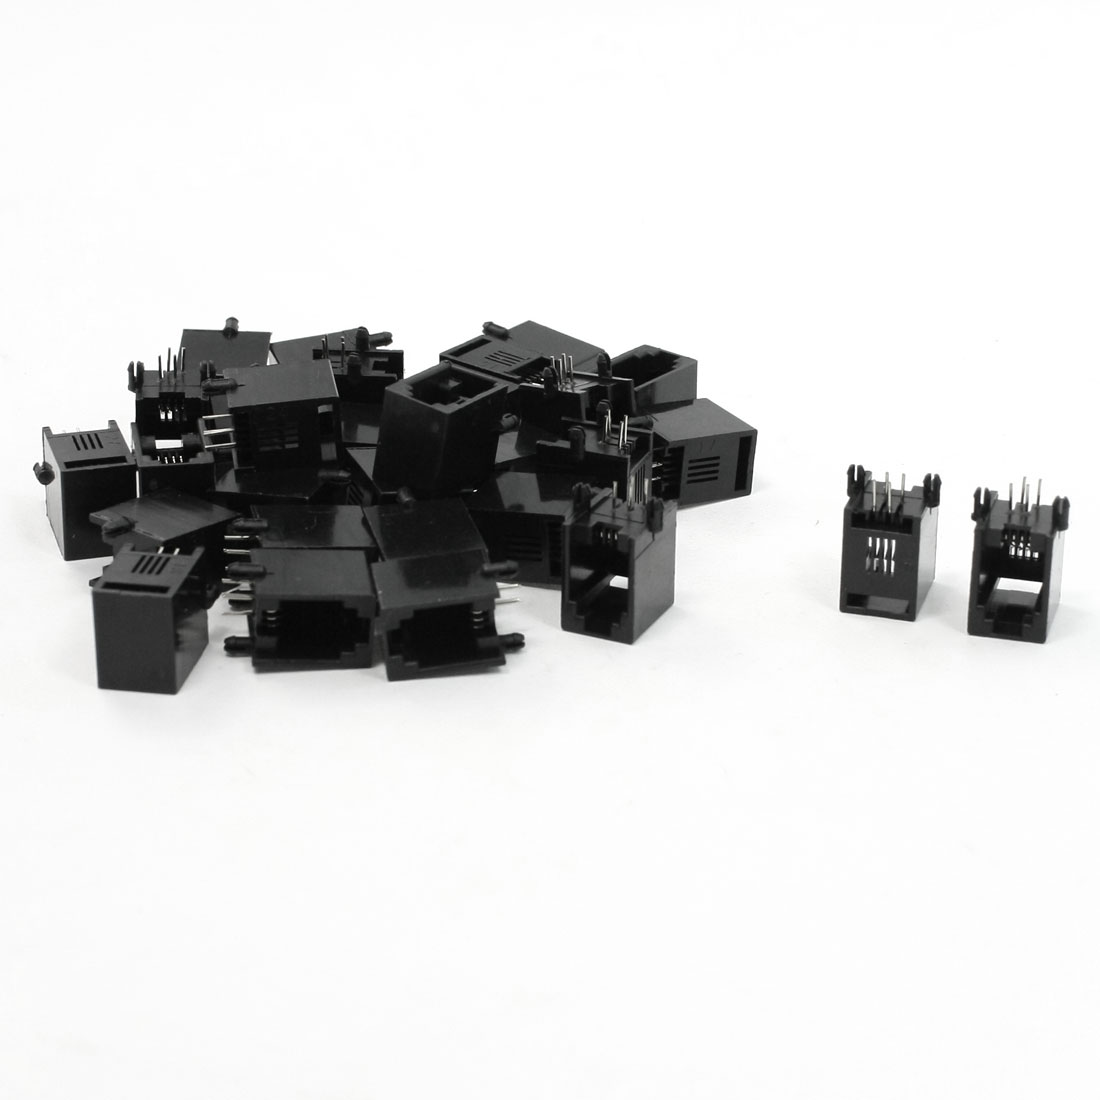 30 Pcs RJ9 RJ10 RJ22 4P4C PCB Jacks Female Connectors for Handset Coiled Cor